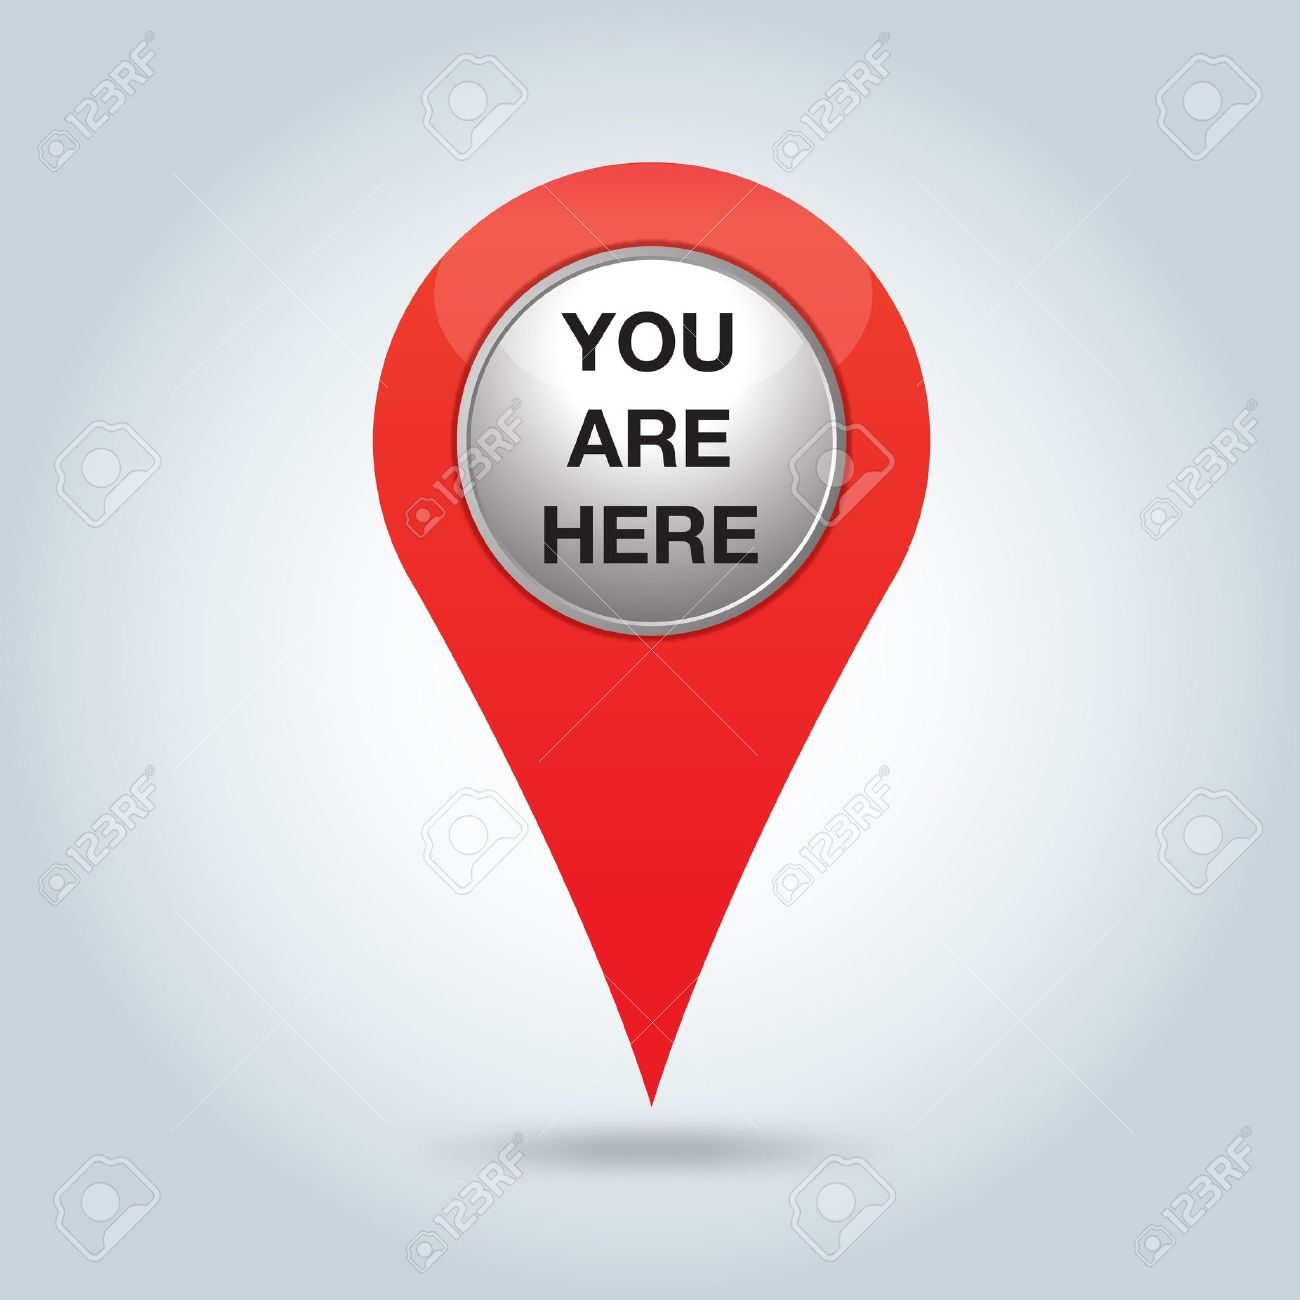 Here clipart svg download You are here clipart 3 » Clipart Station svg download